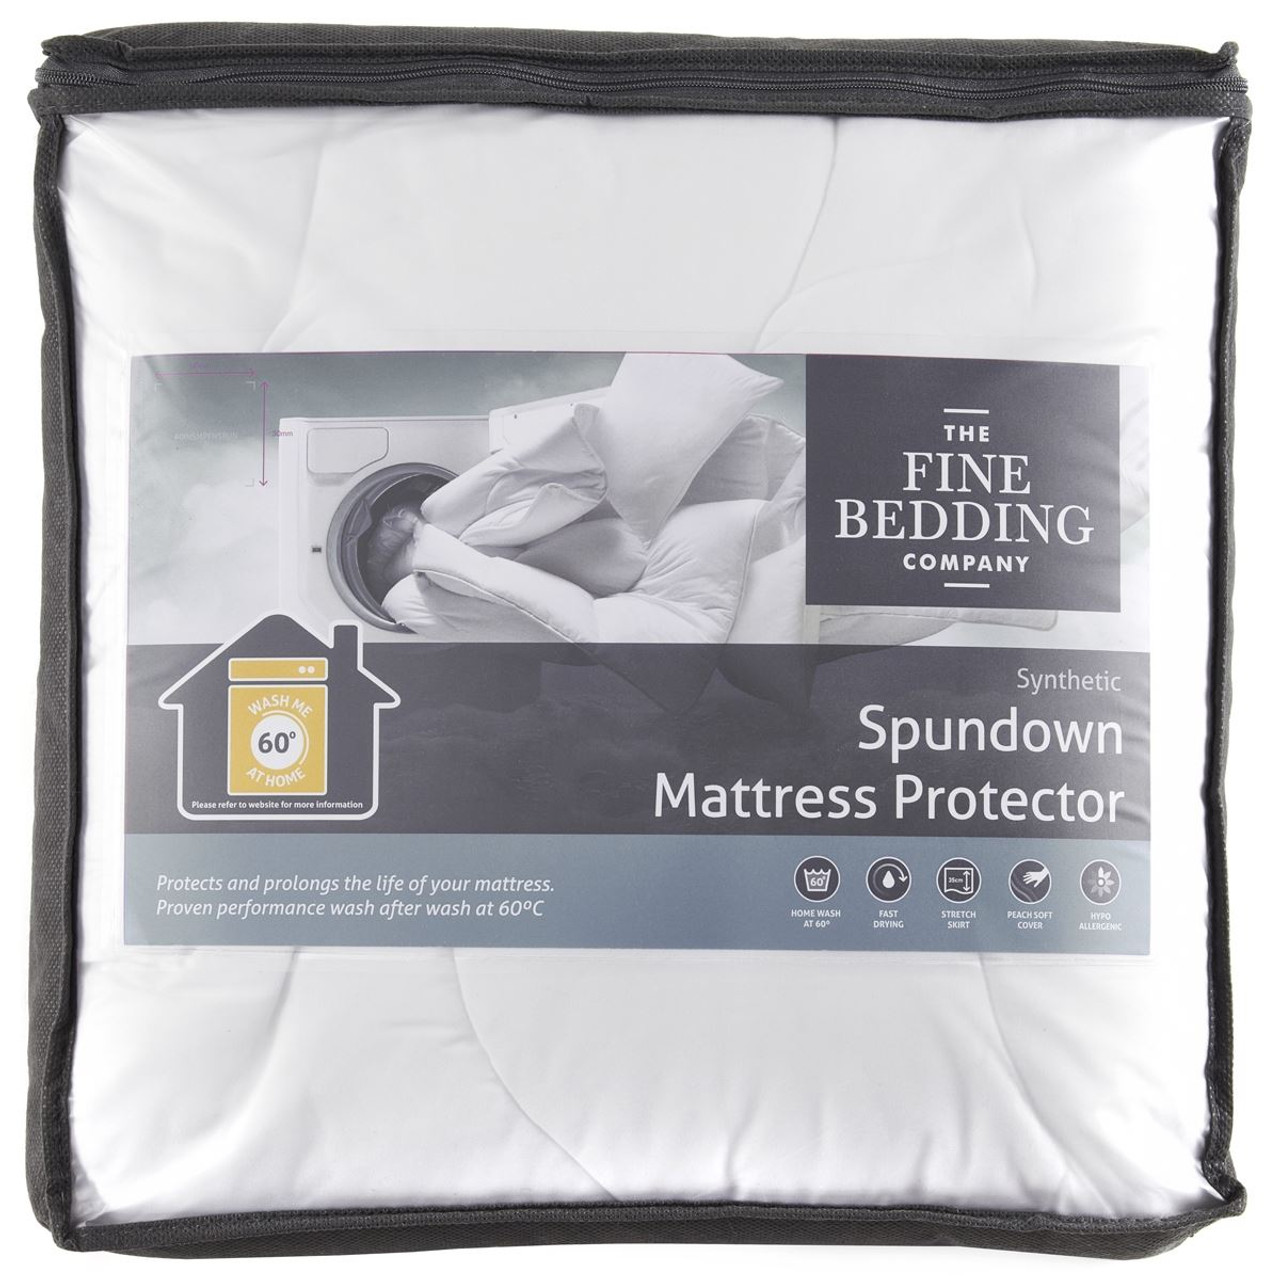 The Fine Bedding Company Spundown Mattress Protector packaging